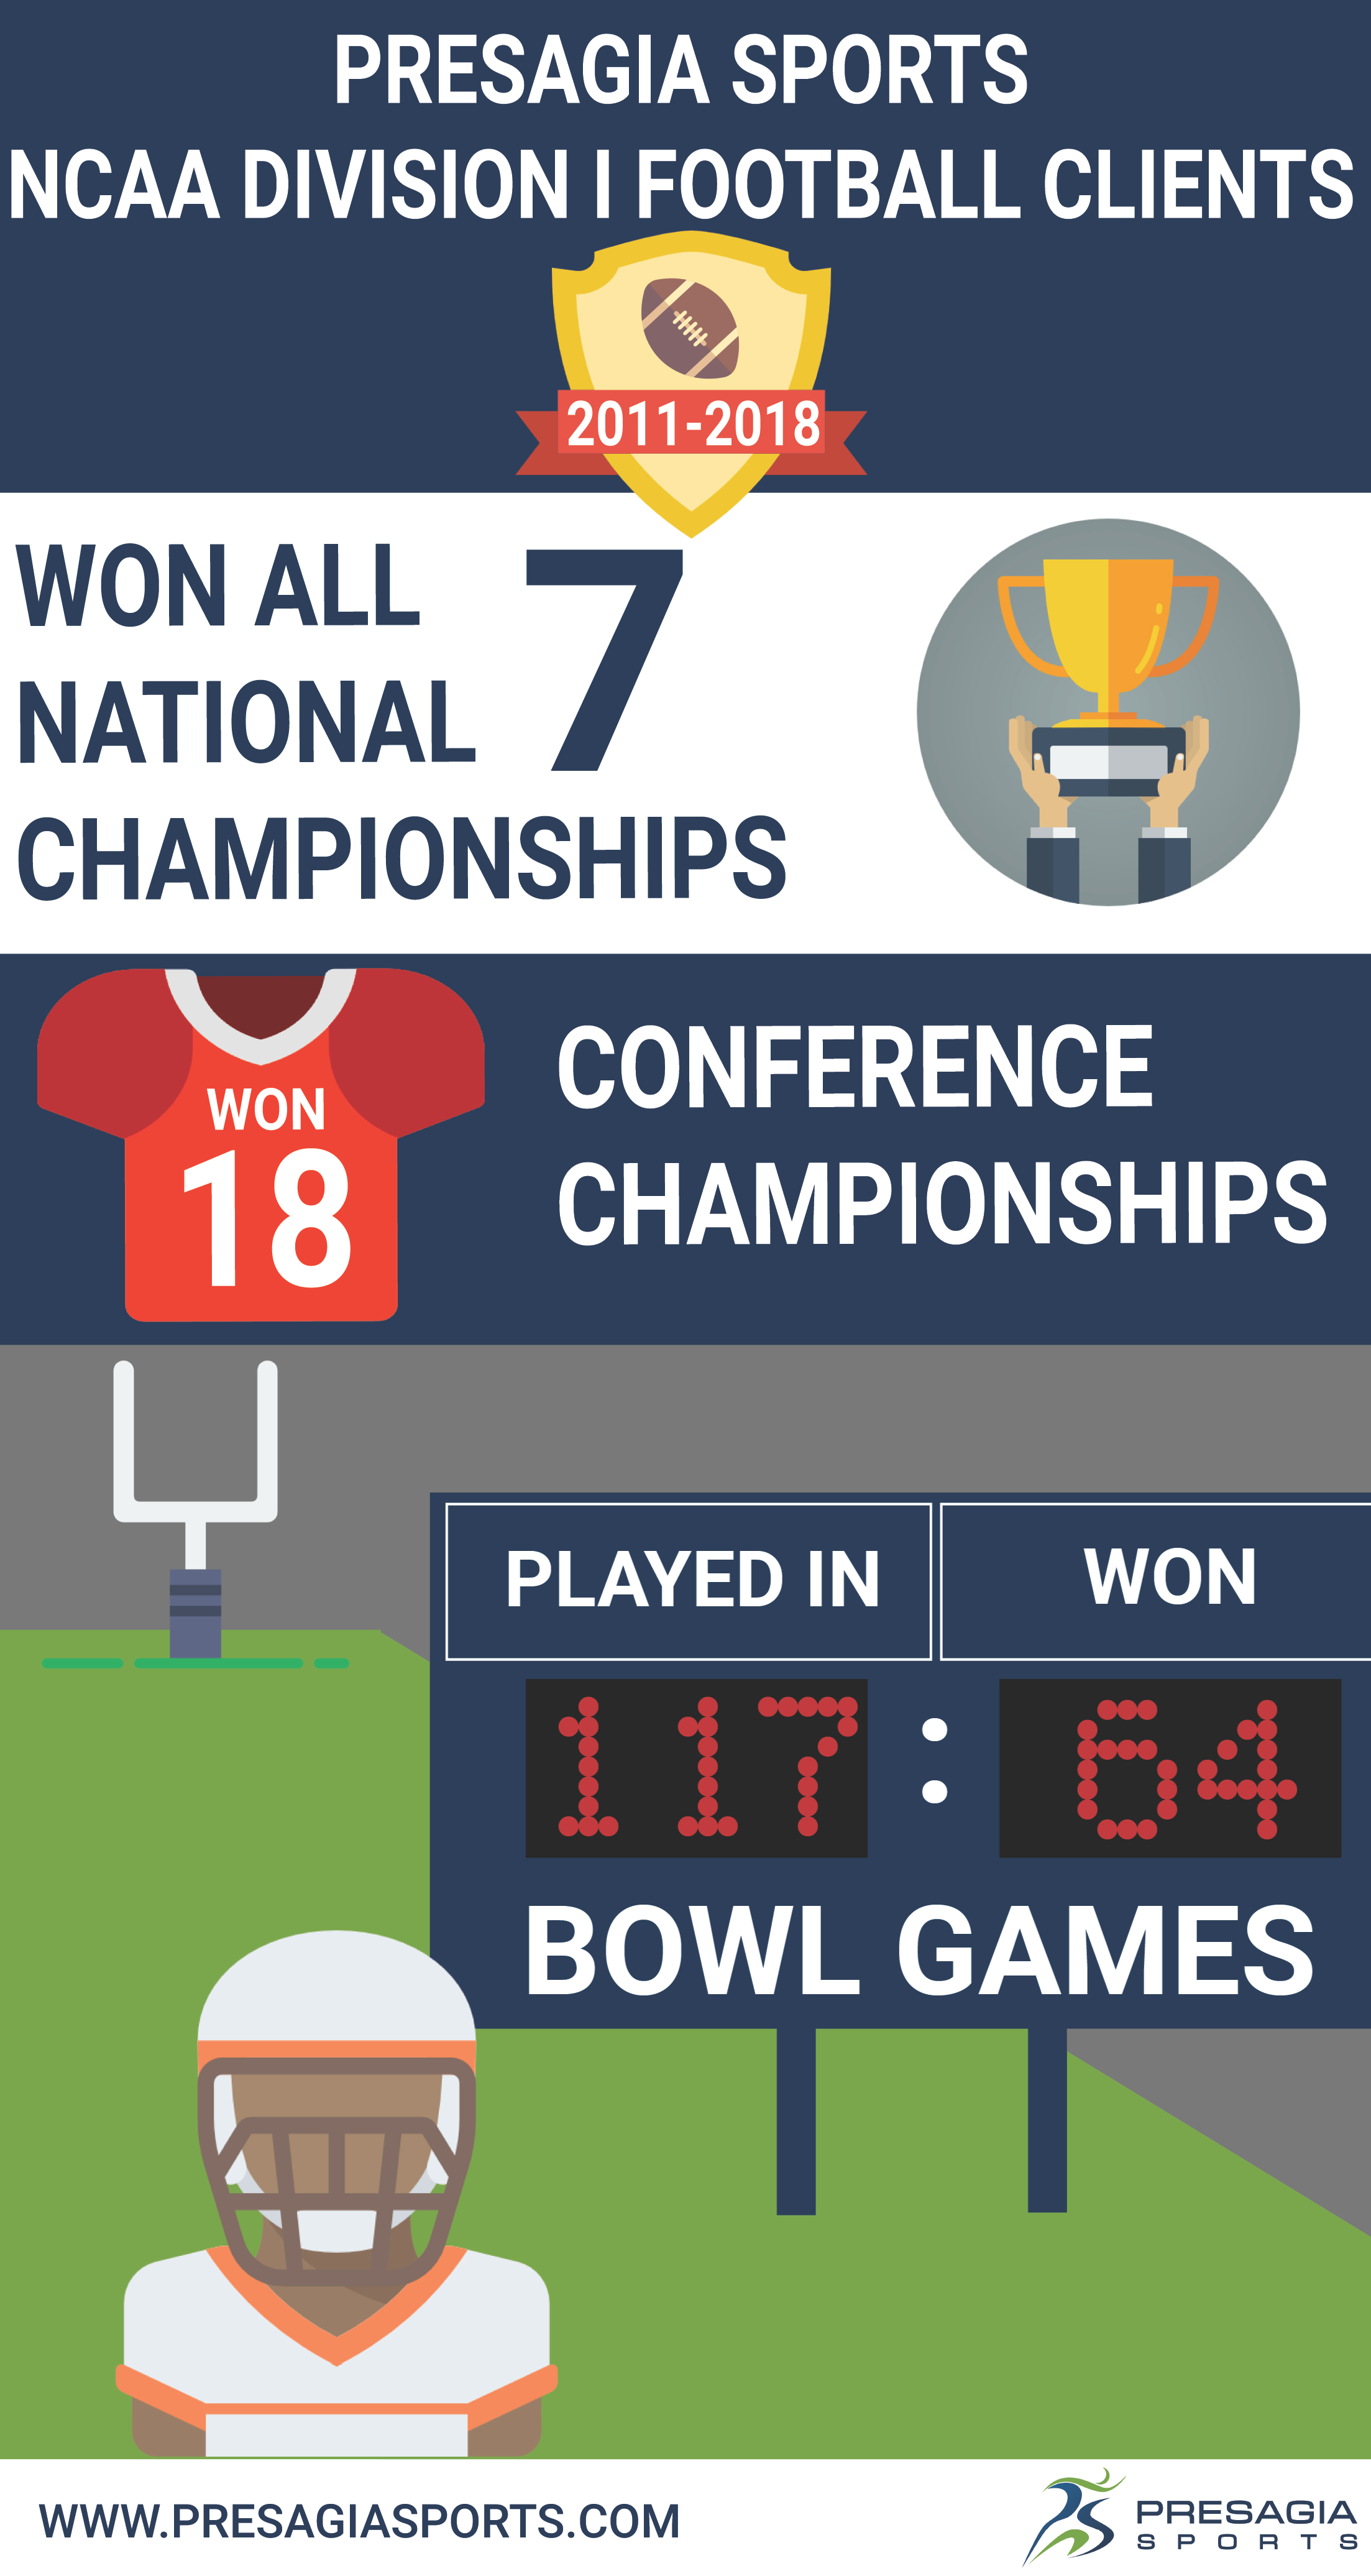 Presagia Sports NCAA Division 1 Football Clients Infographic